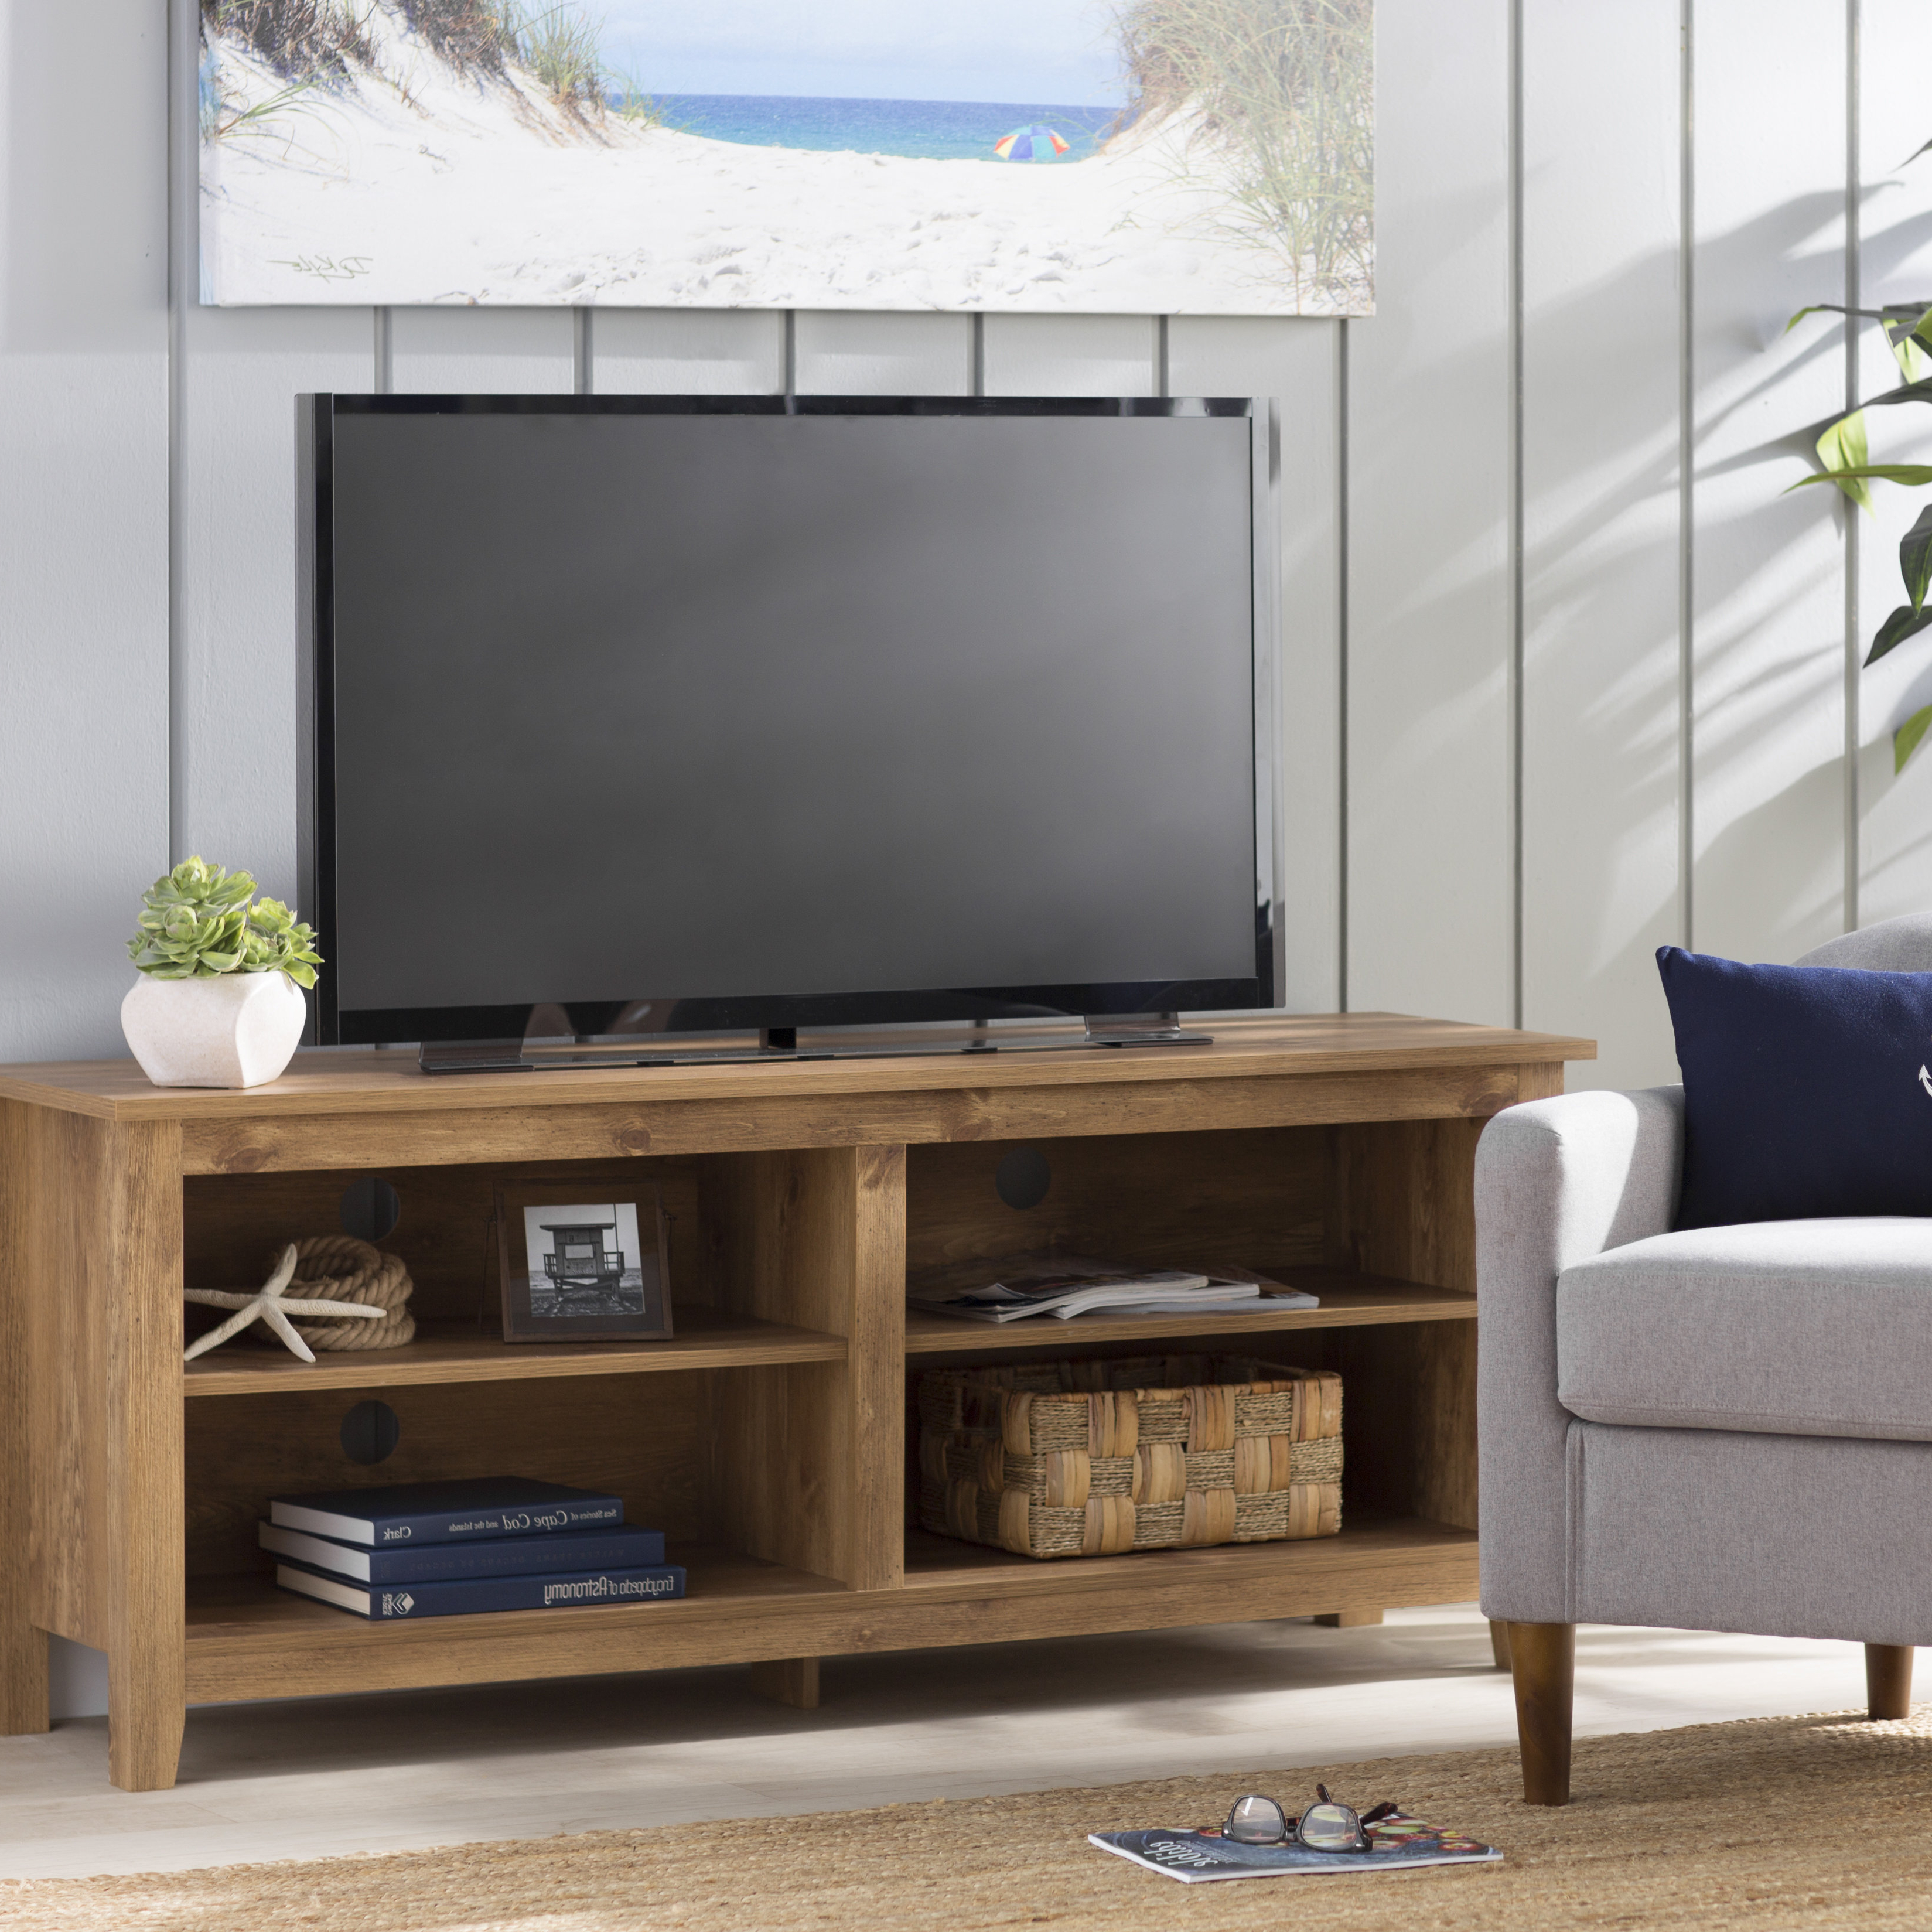 Tv Stand For 75 Inch Tv | Wayfair In Laurent 70 Inch Tv Stands (View 5 of 20)